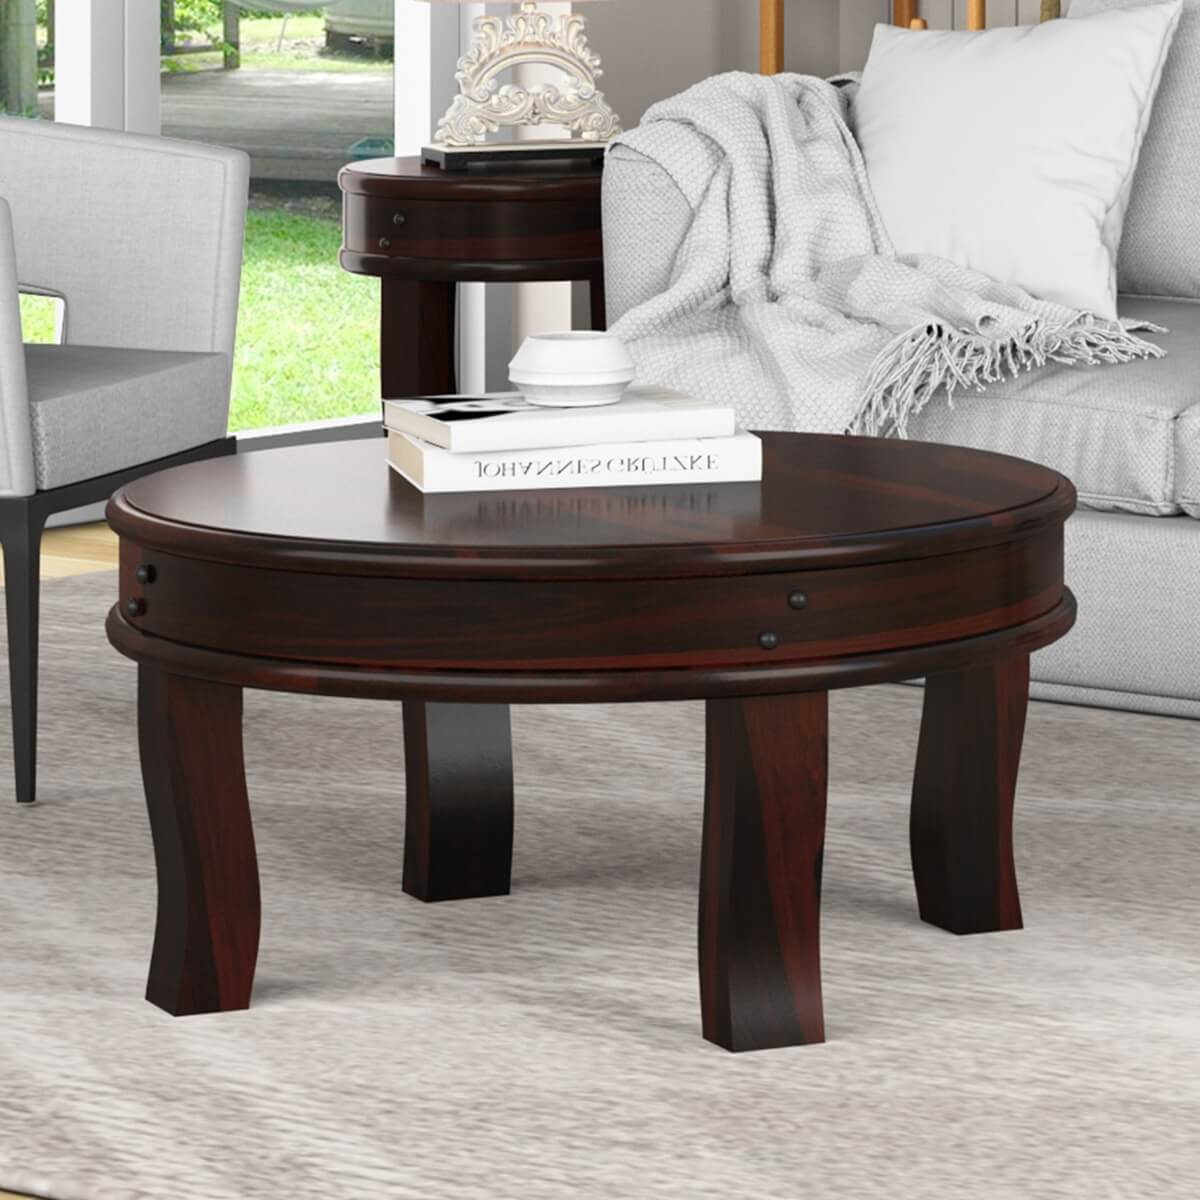 Manitoba Rustic Solid Wood Full Moon Round Coffee Table